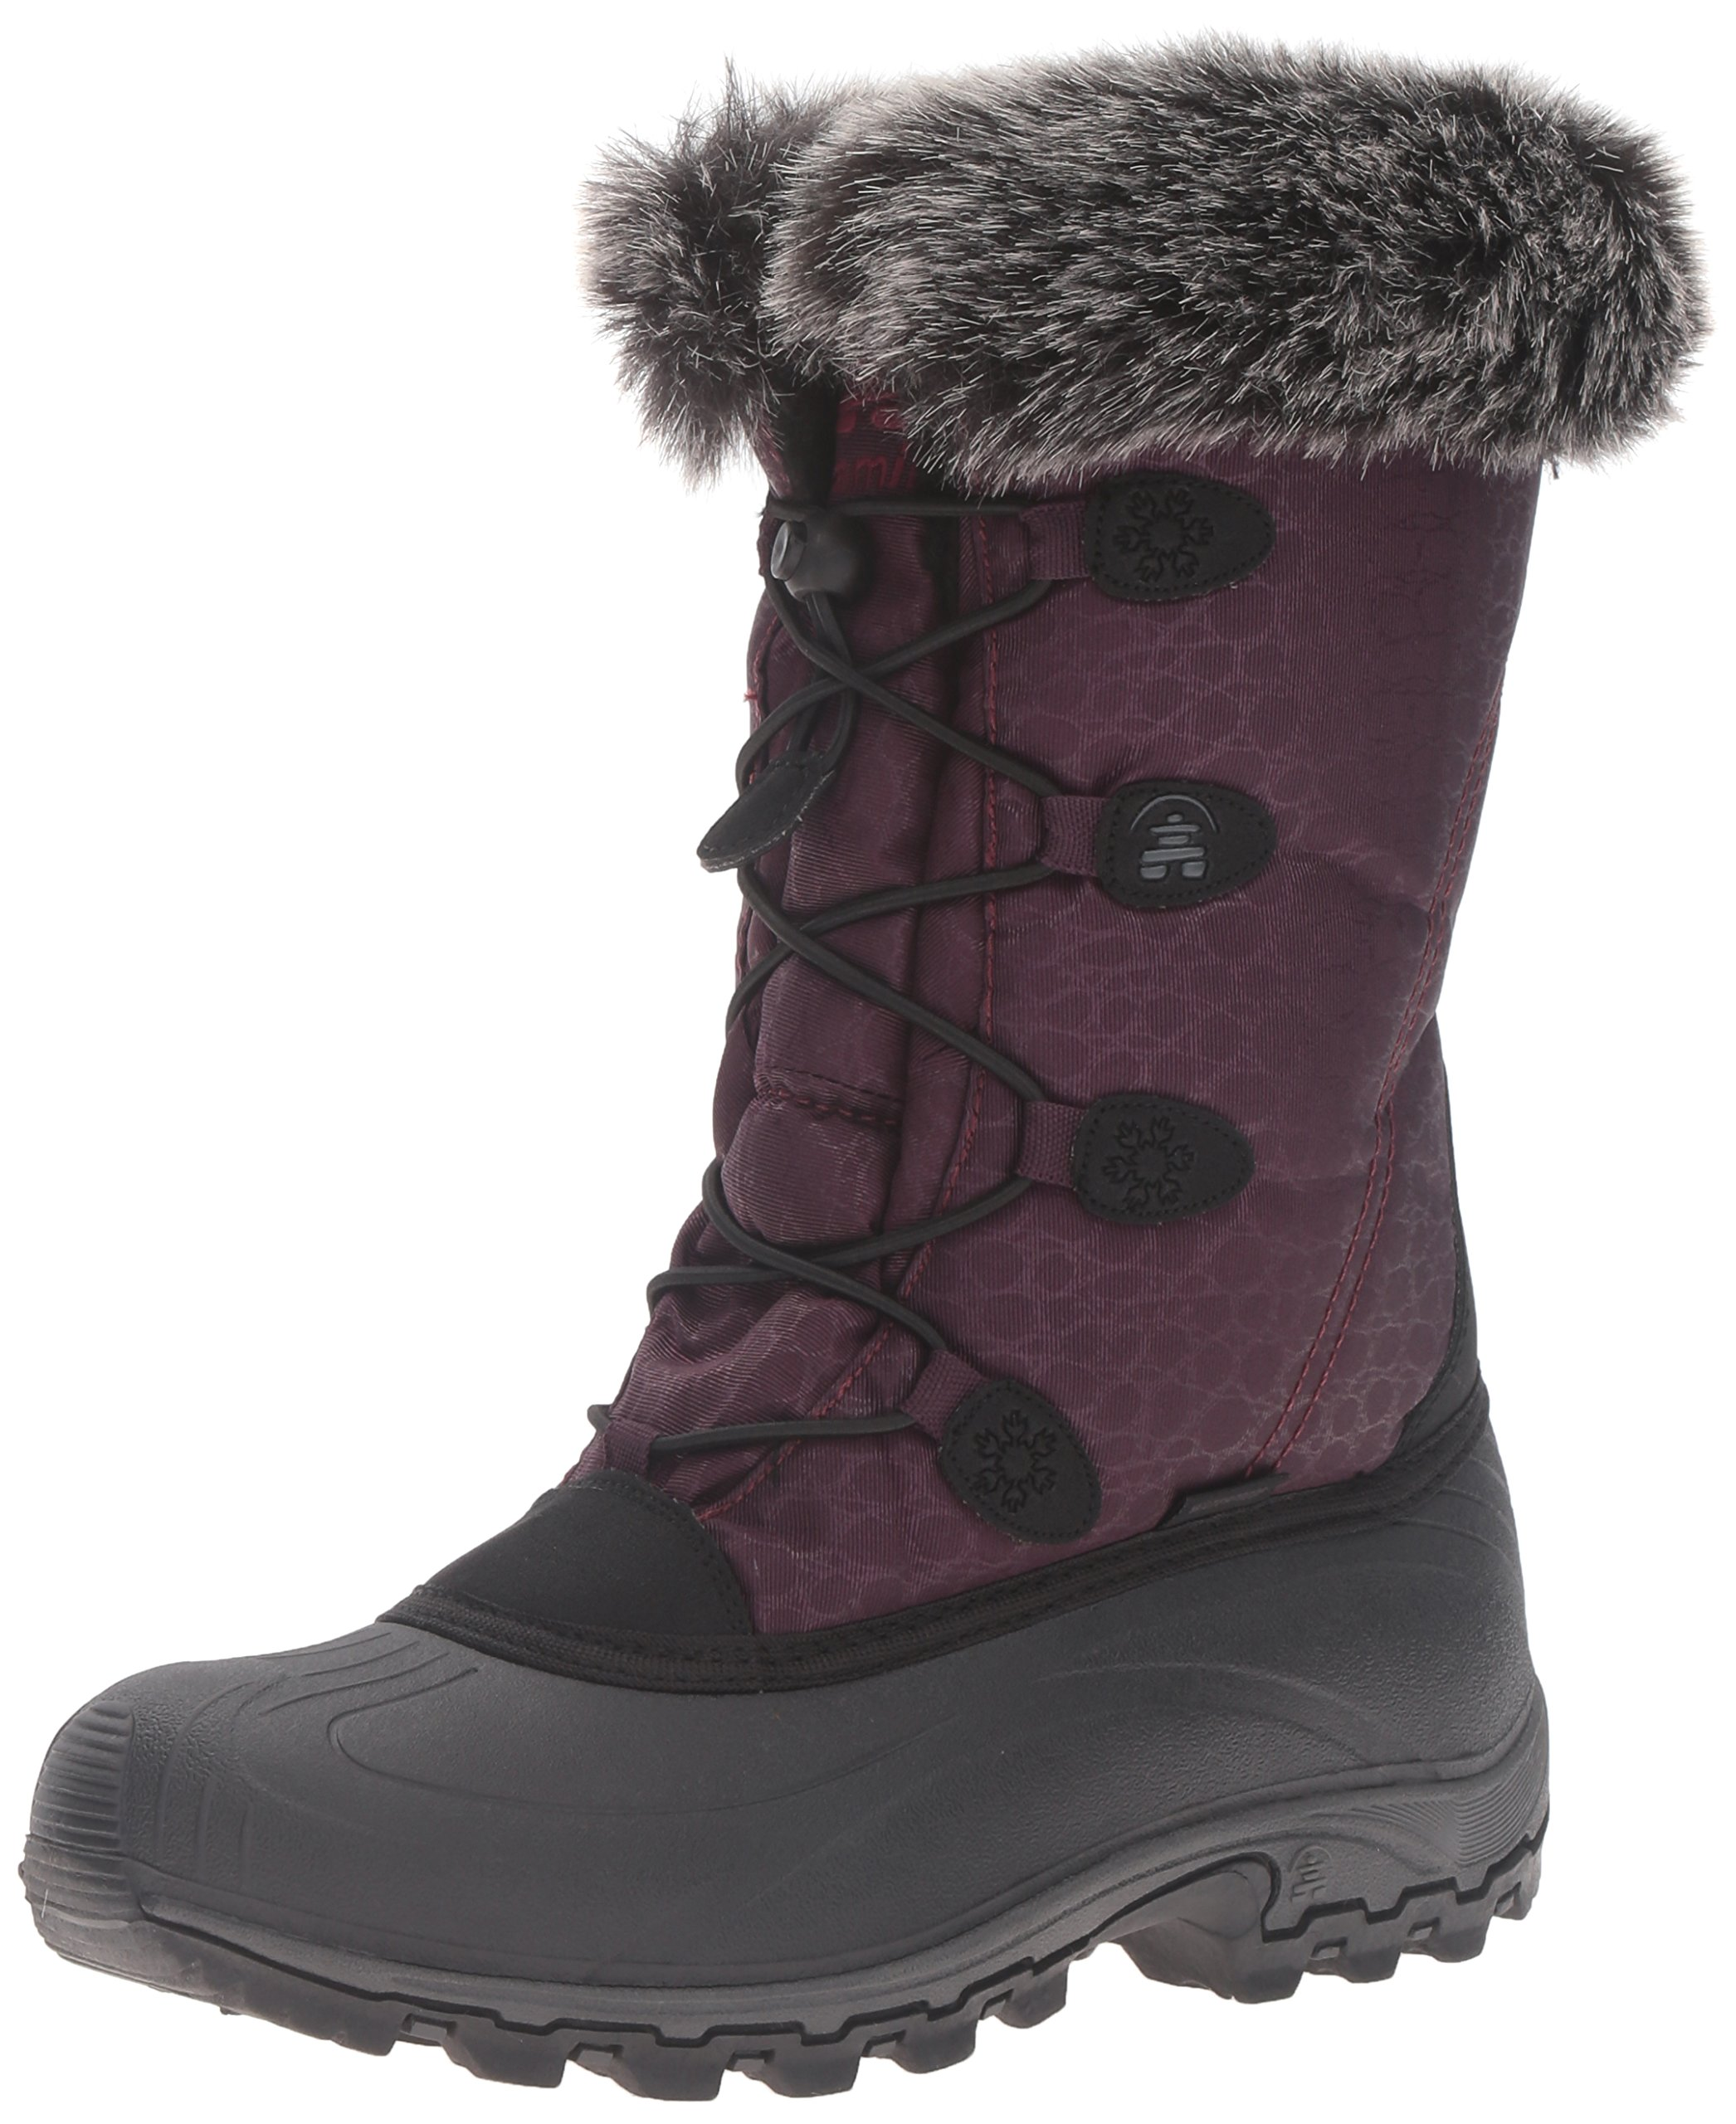 Kamik Women's Momentum Snow Boot, Burgundy, 7 M US